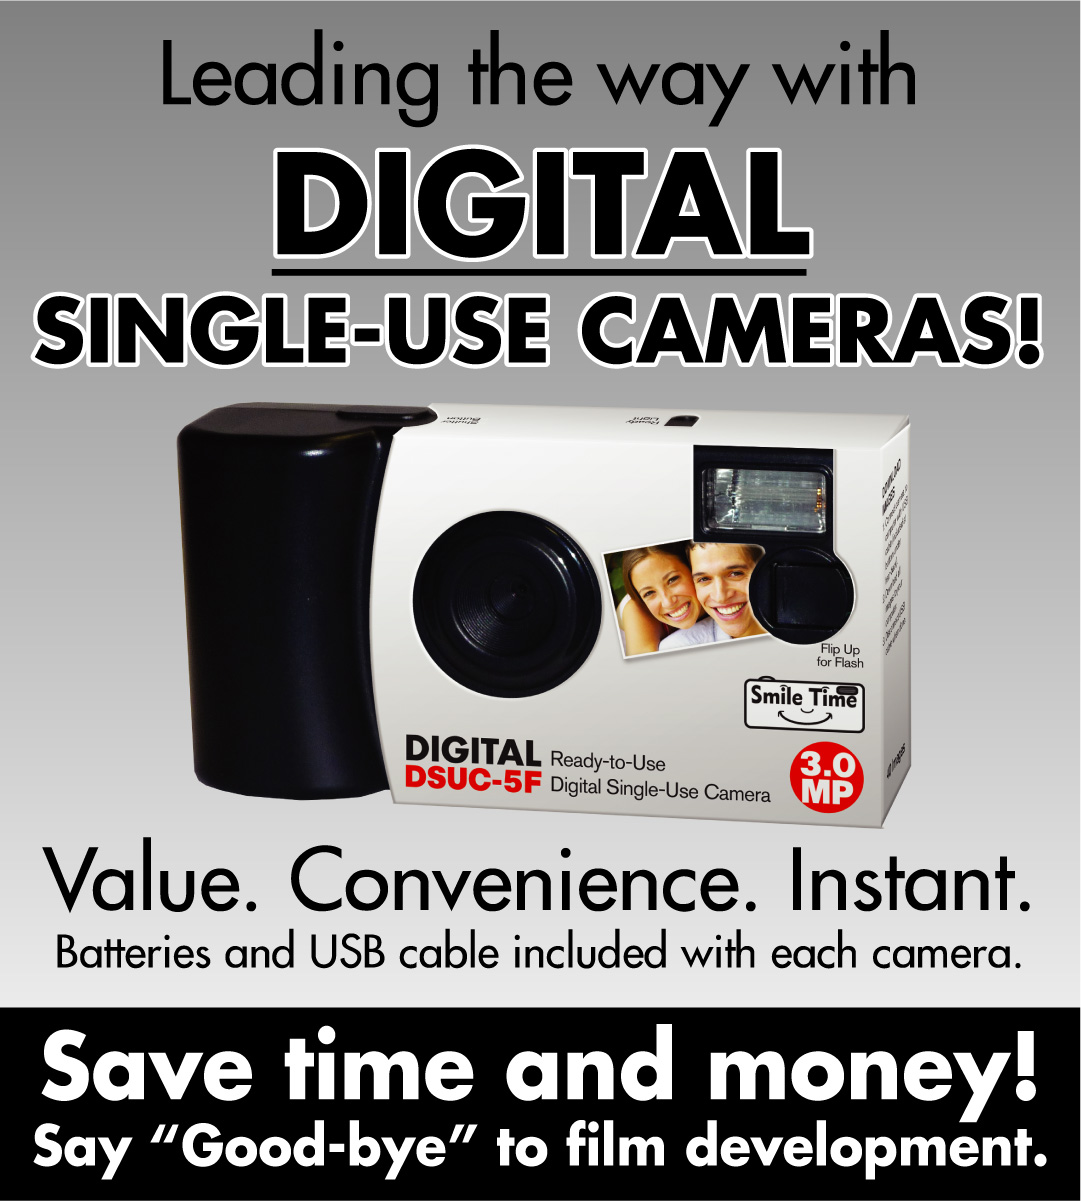 Digital Single-Use Cameras